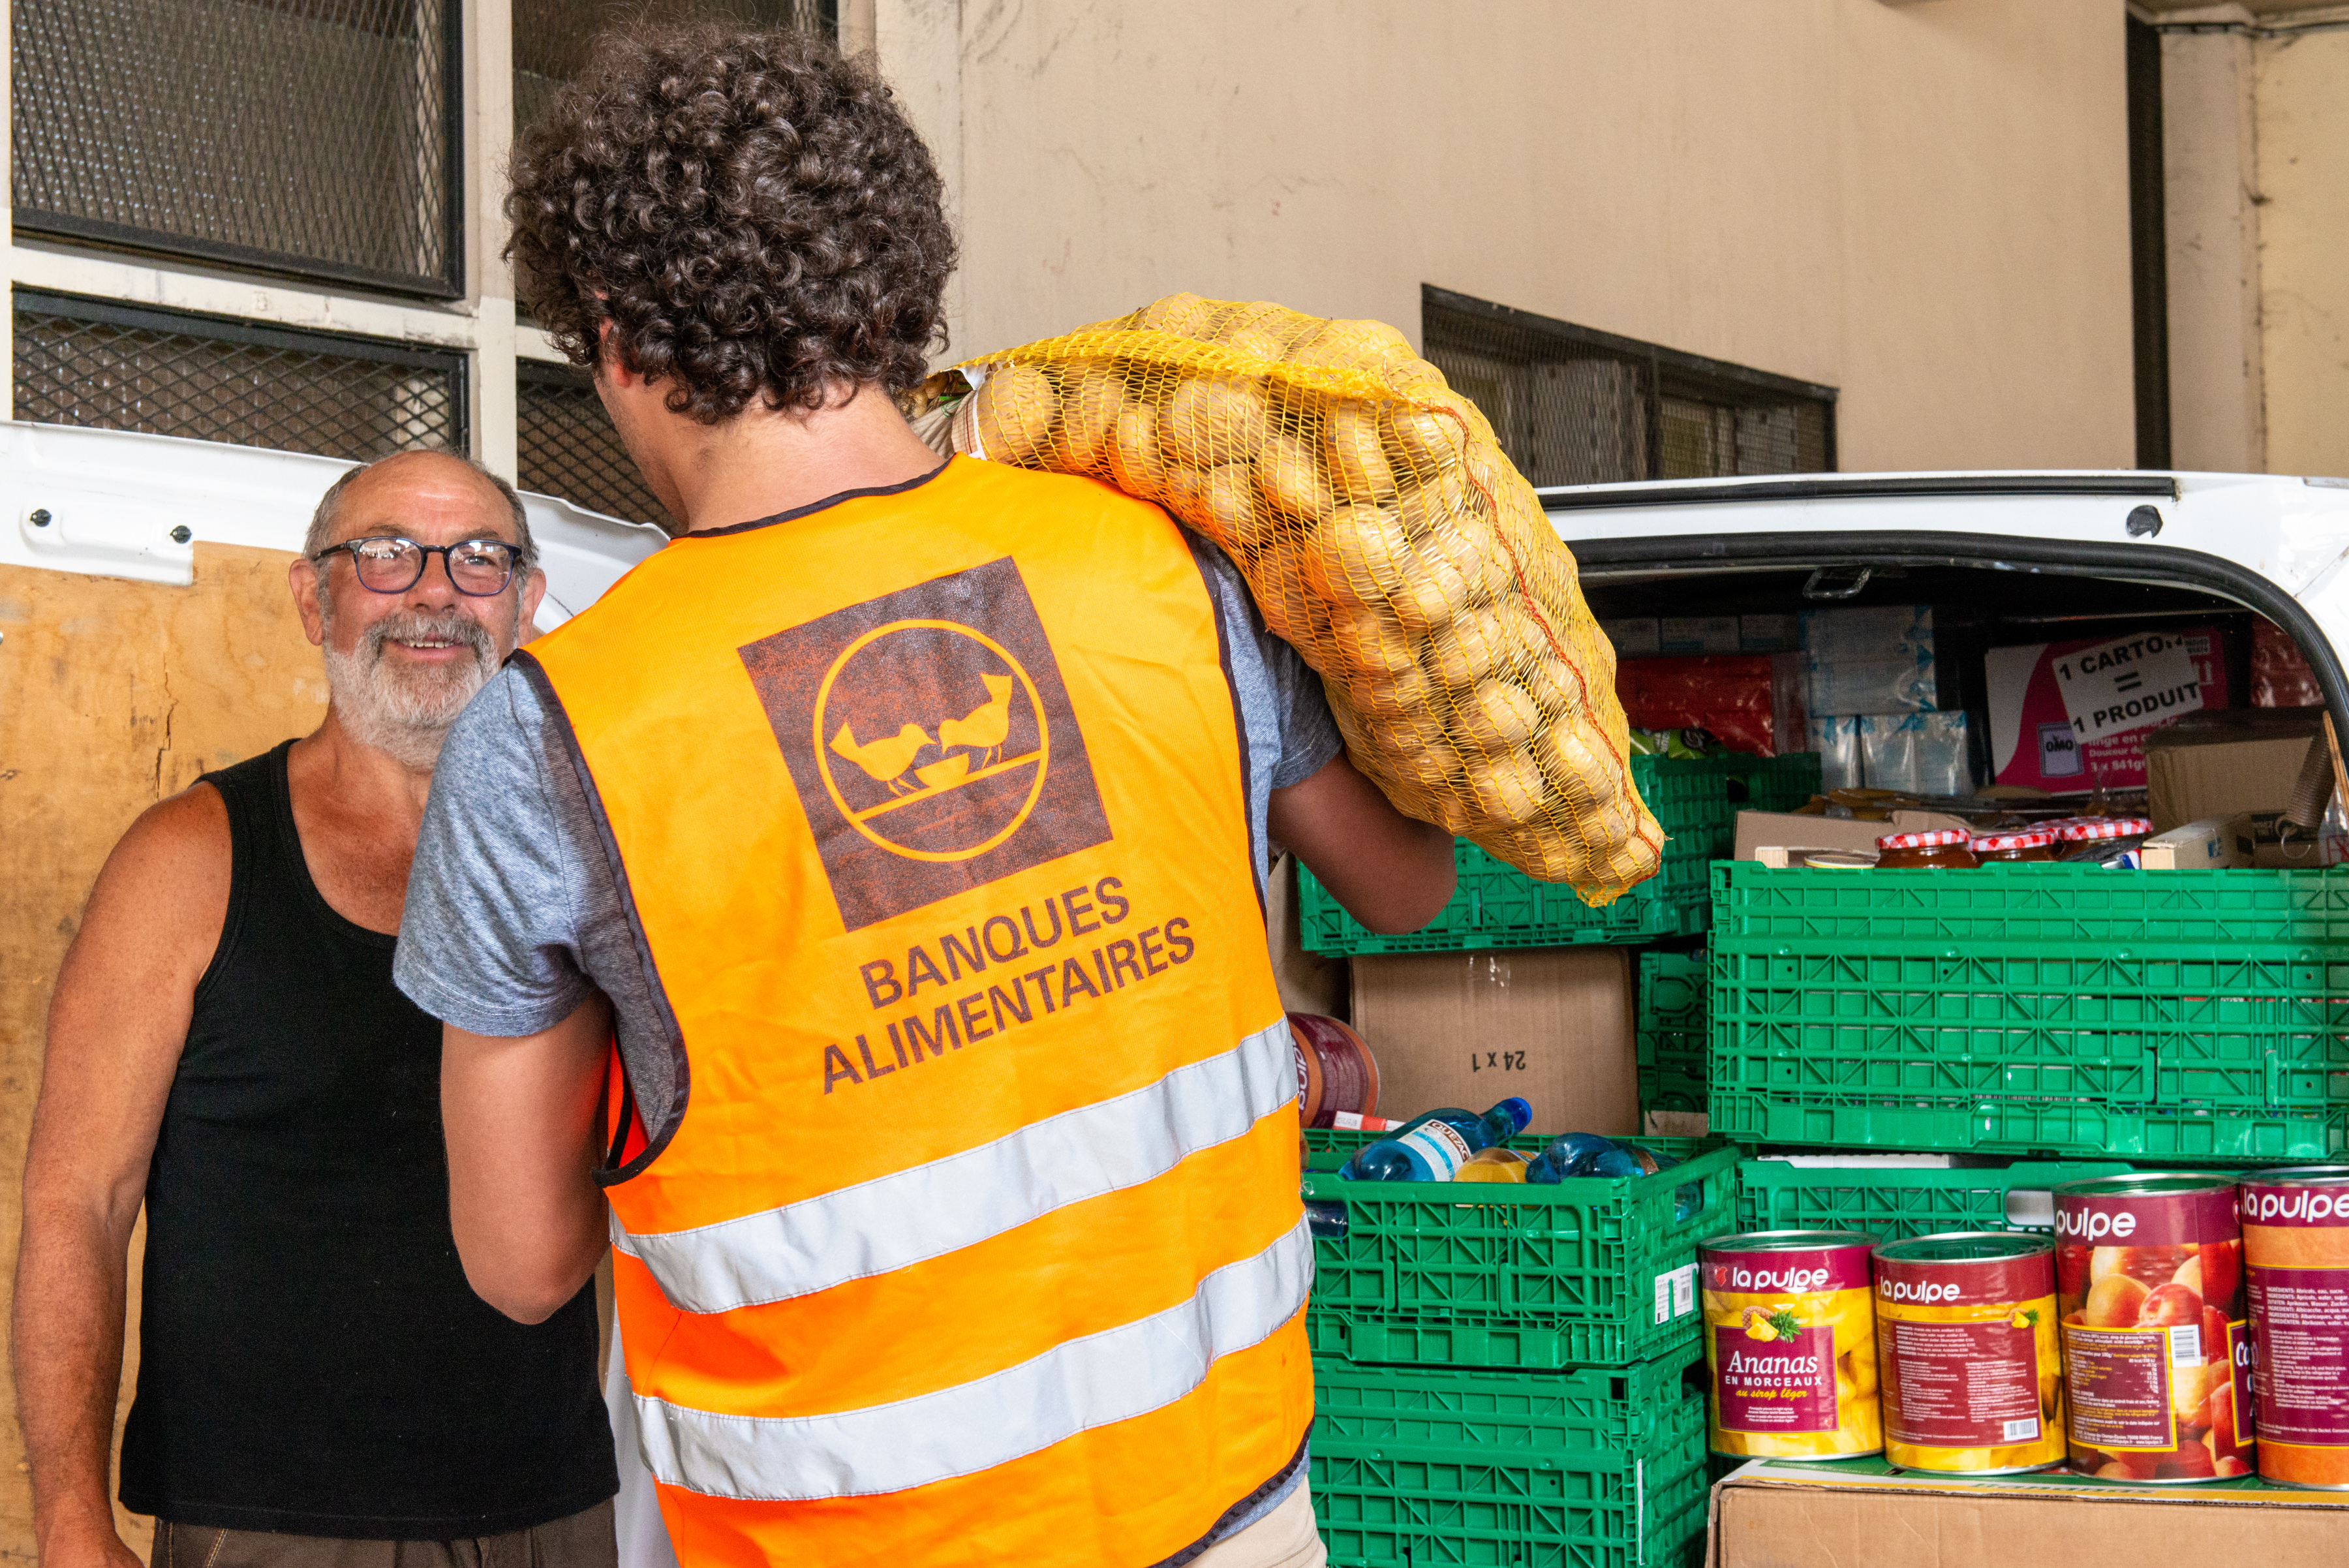 Distribution banque alimentaire